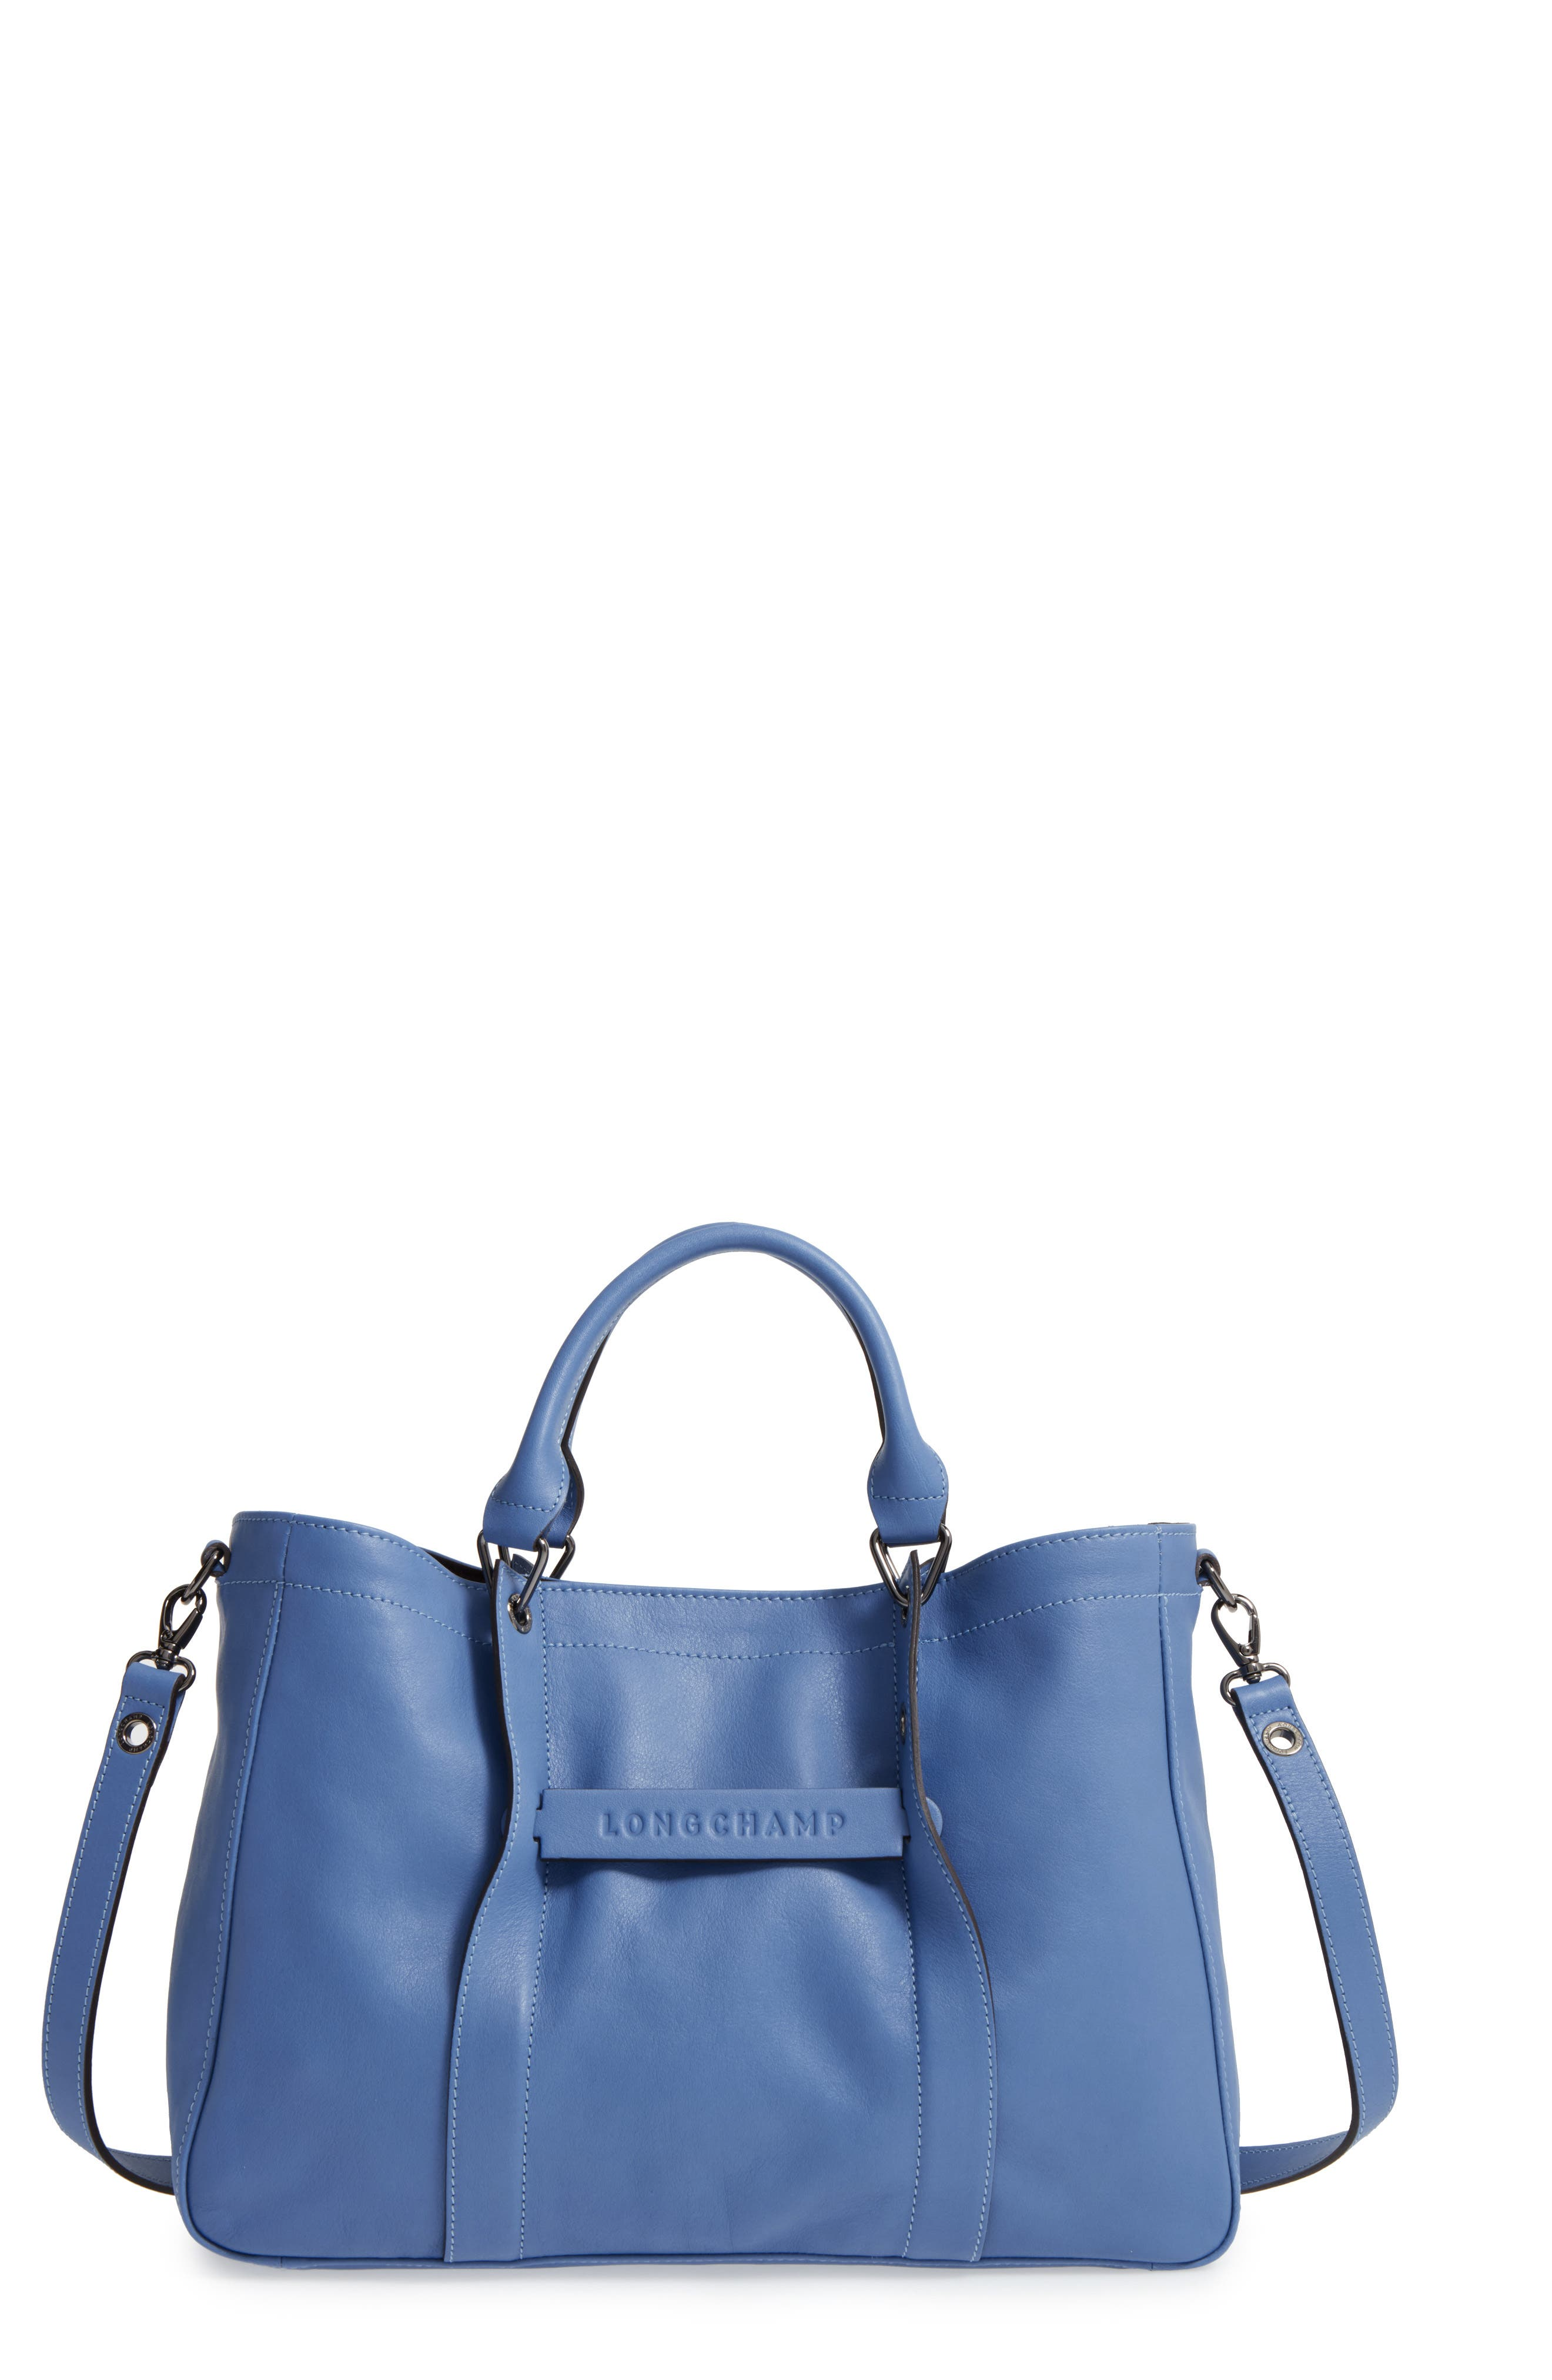 Alternate Image 1 Selected - Longchamp '3D - Small' Leather Tote